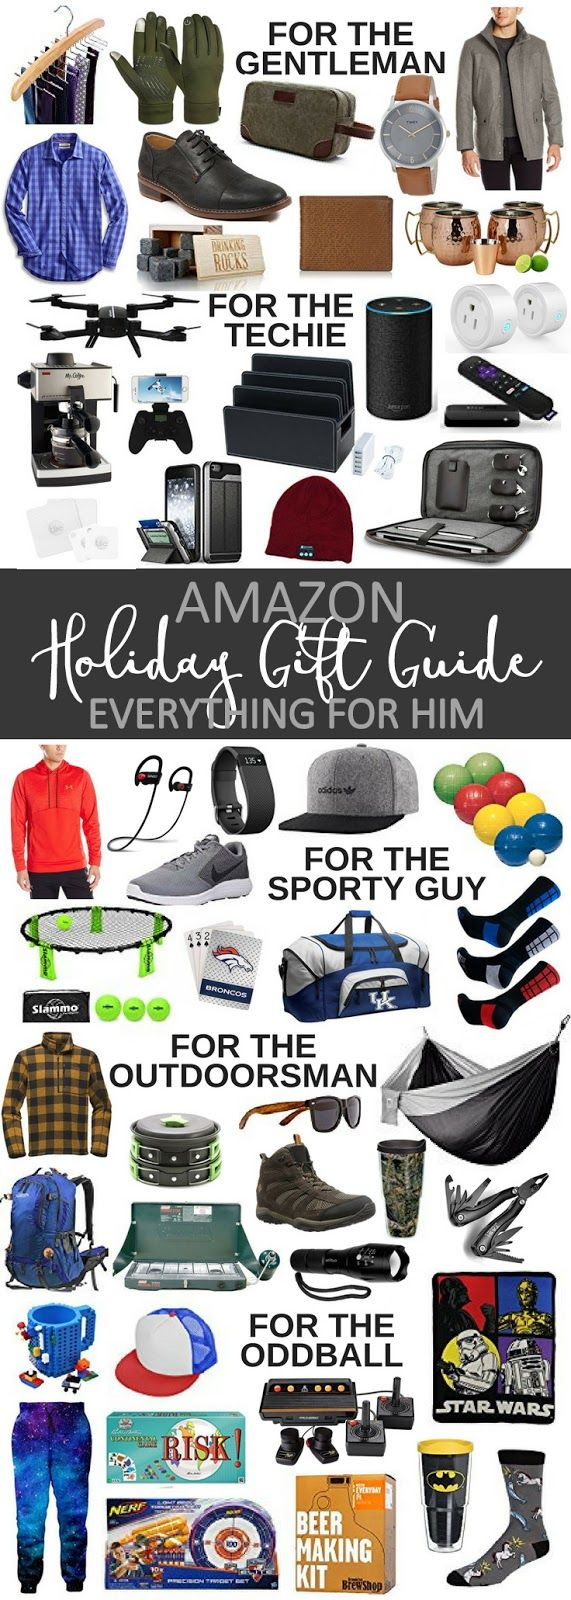 Christmas Gift Guide For Him - All From Amazon! Holiday present ideas for all the men in your life, whether they're the gentleman, the techie, the sporty guy, the outdoorsman, or the oddball.